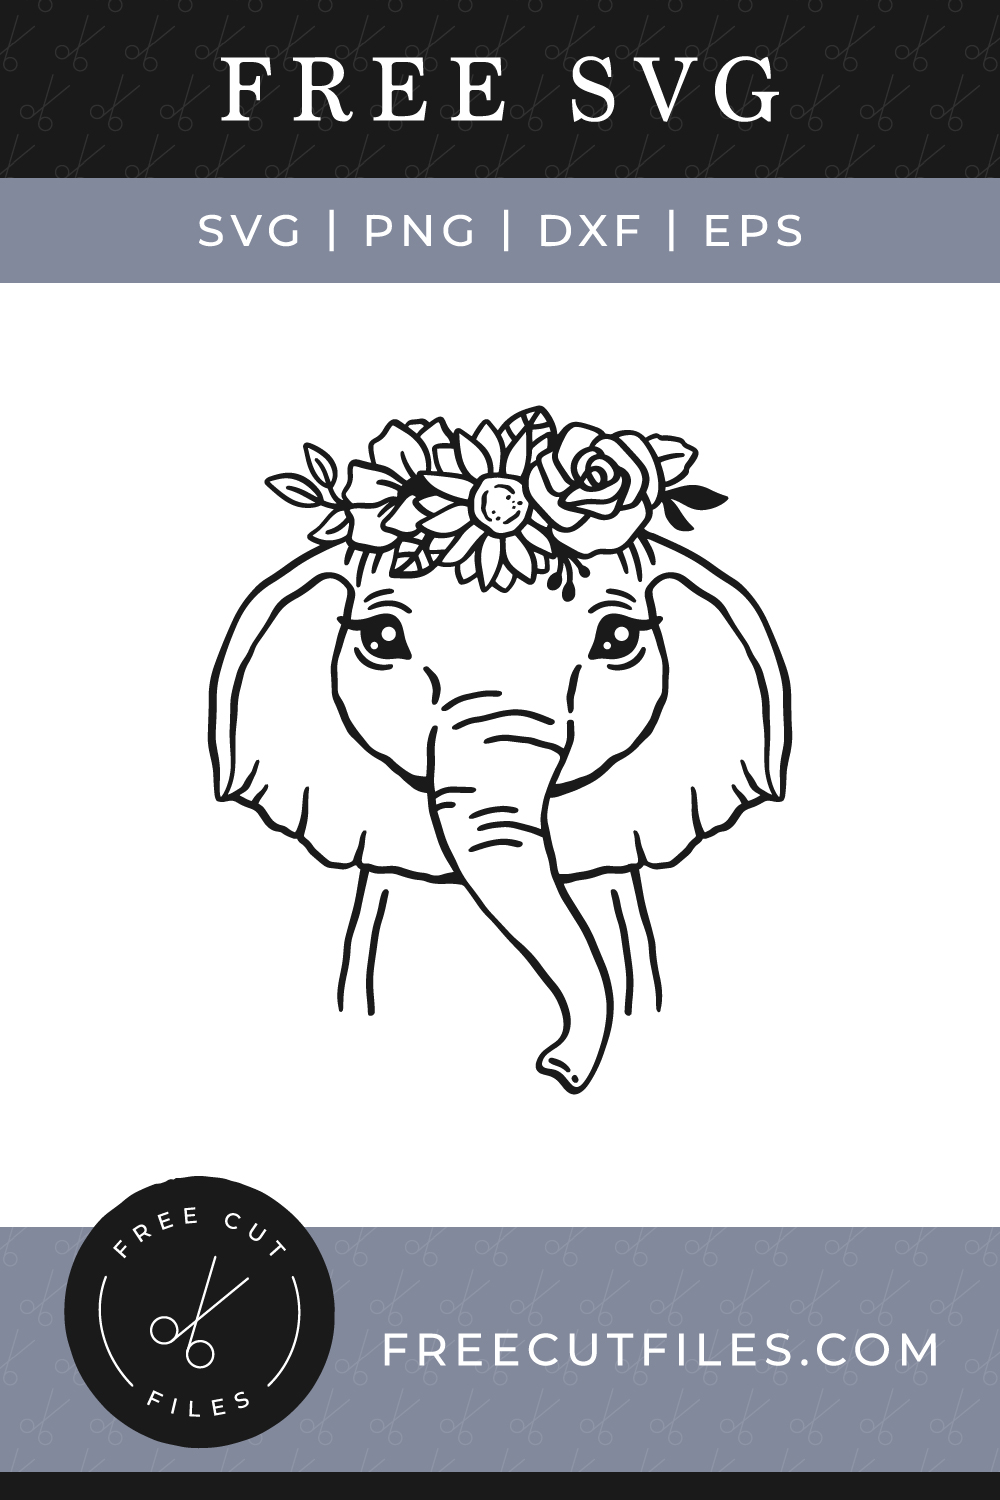 Free Floral Baby Elephant Face SVG